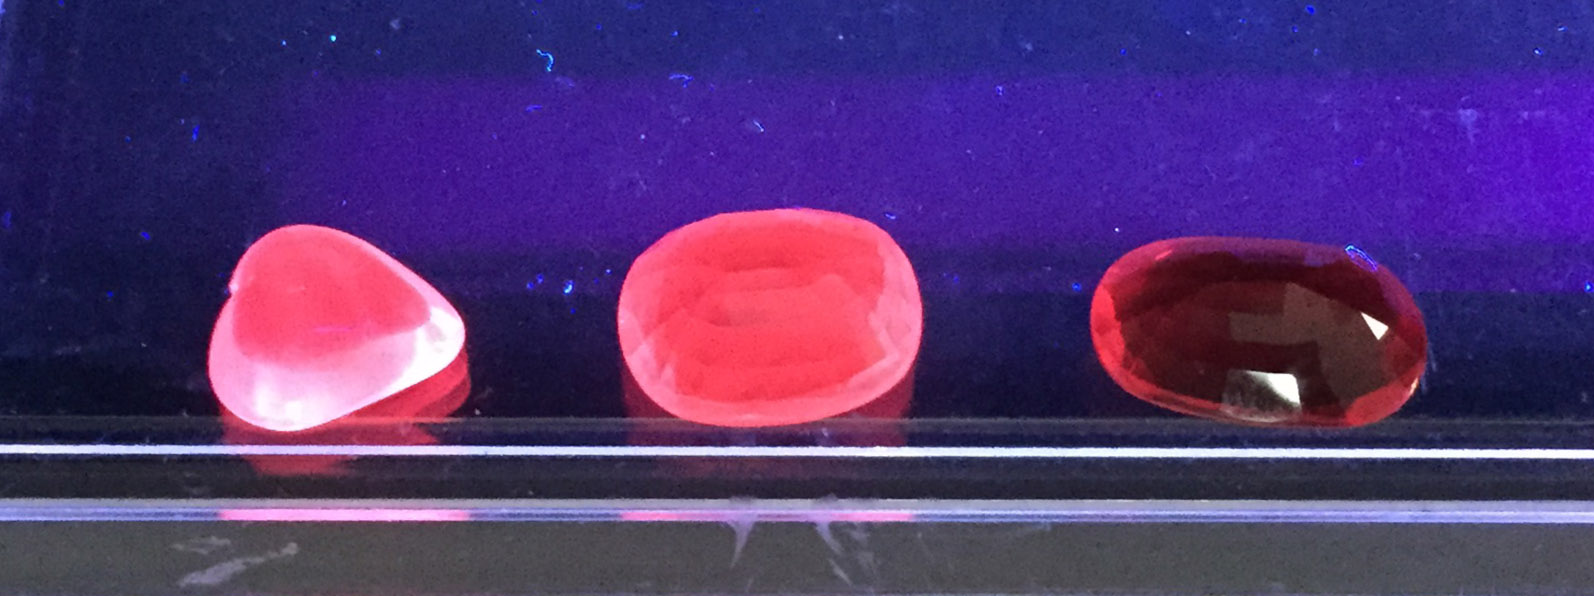 "Fig. 1: (from left to right):  Burmese ""Pigeon's Blood"" ruby  (very strong fluorescence),  Mozambican ruby type I, ""Pigeon's Blood""  (strong fluorescence),  Mozambican ruby type II , (weak fluorescence)   COPYRIGHT © 2015 BY GRS GEMRESEARCH SWISSLAB AG"